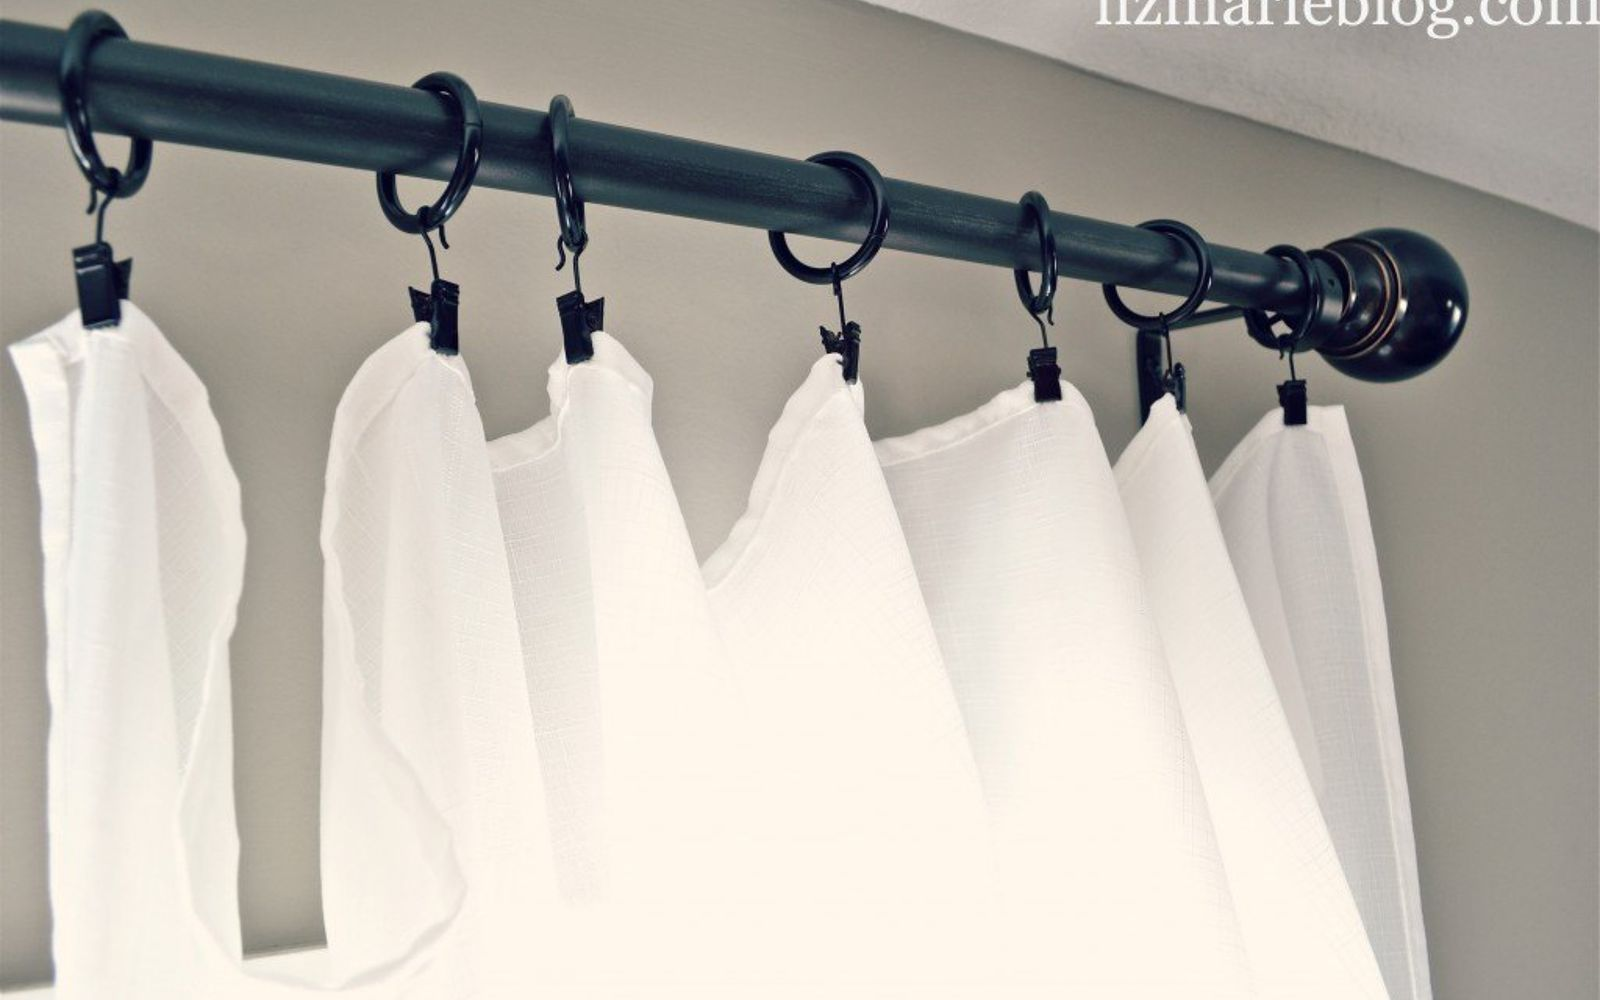 s 9 genius decorating hacks using tablecloths, repurposing upcycling, Turn cheap cloths into chic flowing curtains